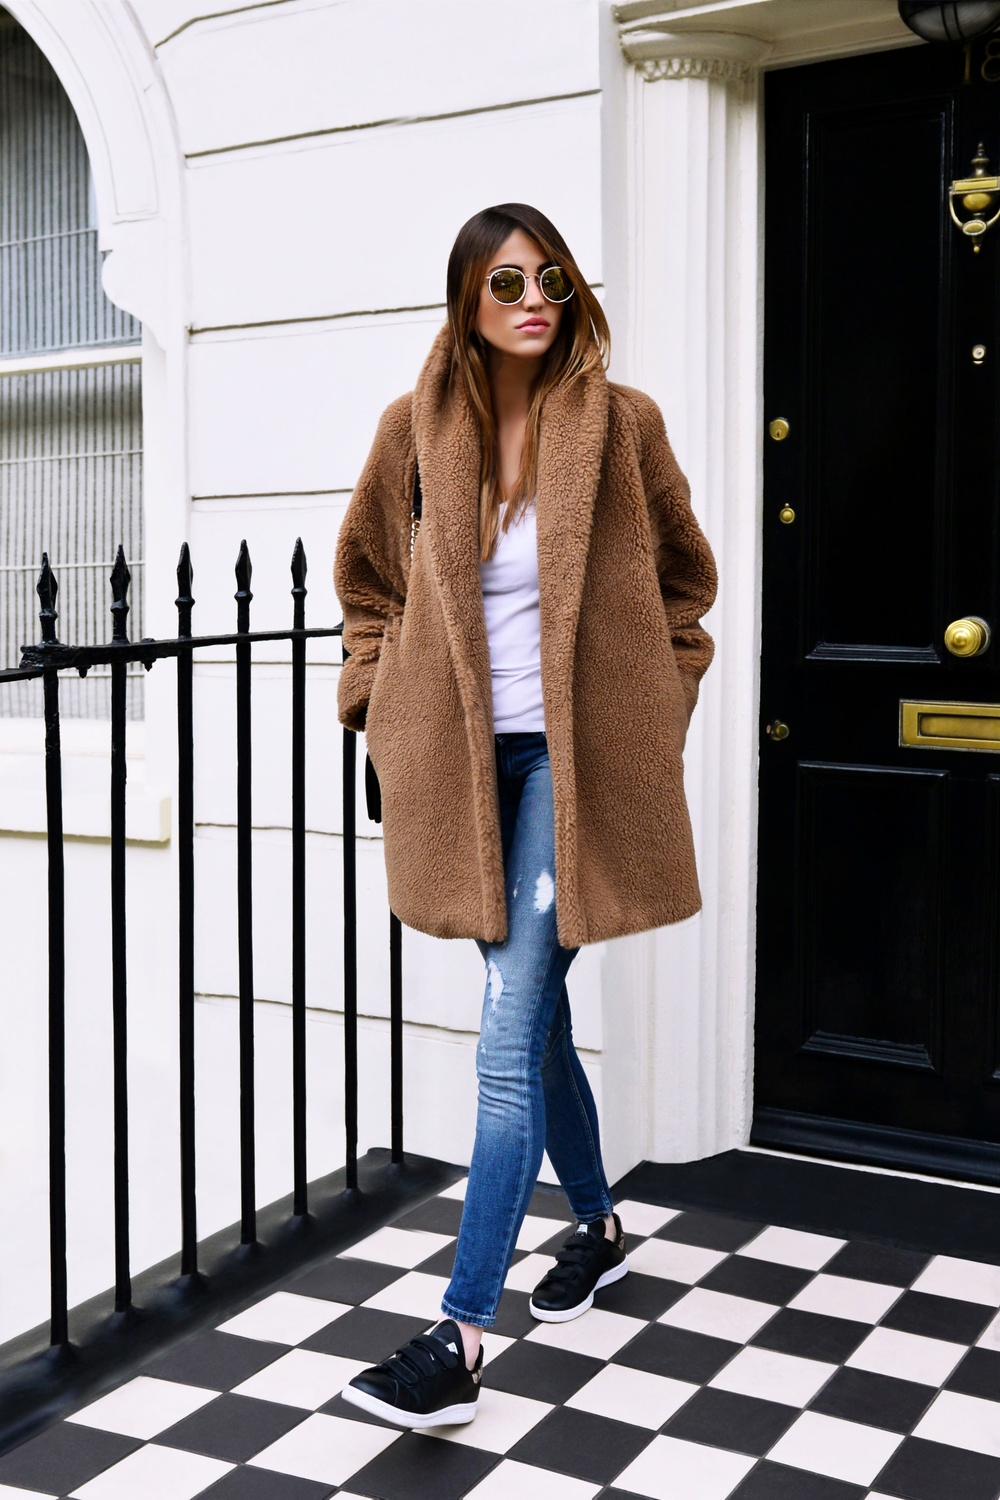 Outfit Of The Day: White shirt by James Perse Distressed jeans by Asos Teddy coat by Max Mara Patent leather black boy bag by Chanel Round Gold sunglasses by Ray Ban check out my fashion blog ! photo (5)